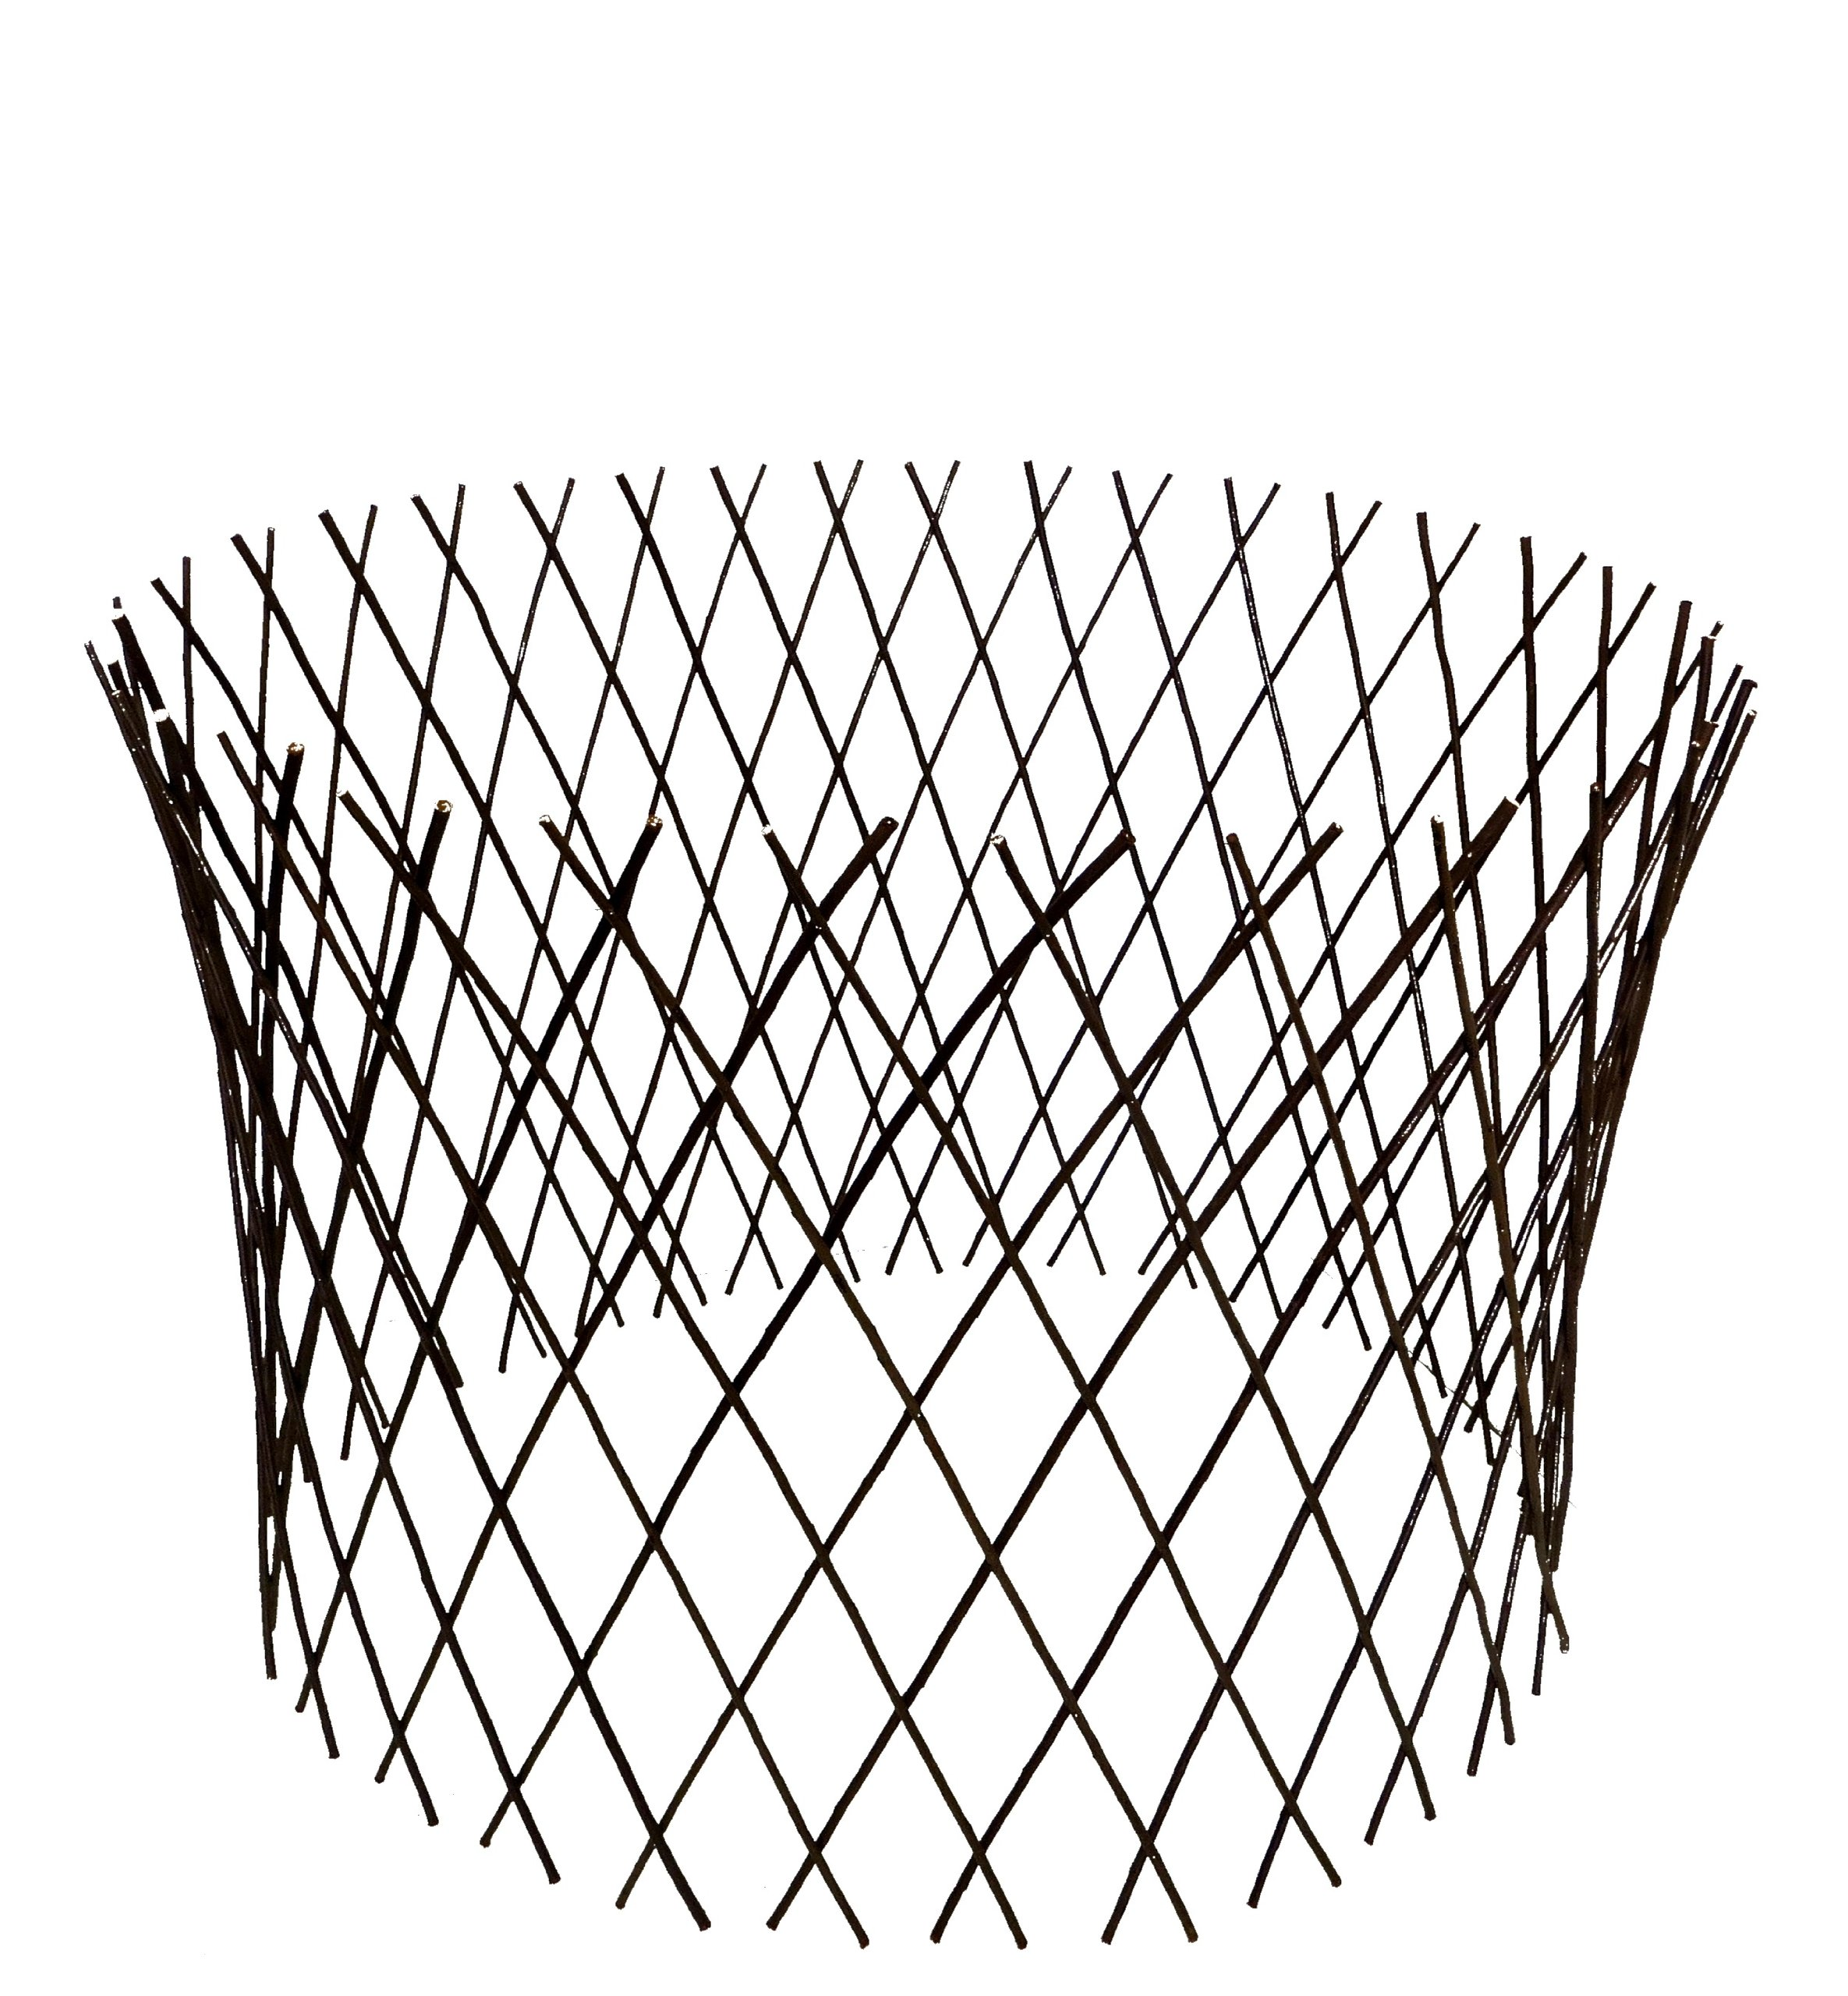 Master Garden Products Circular Willow Lattice Fence, 30 By 60 Inch